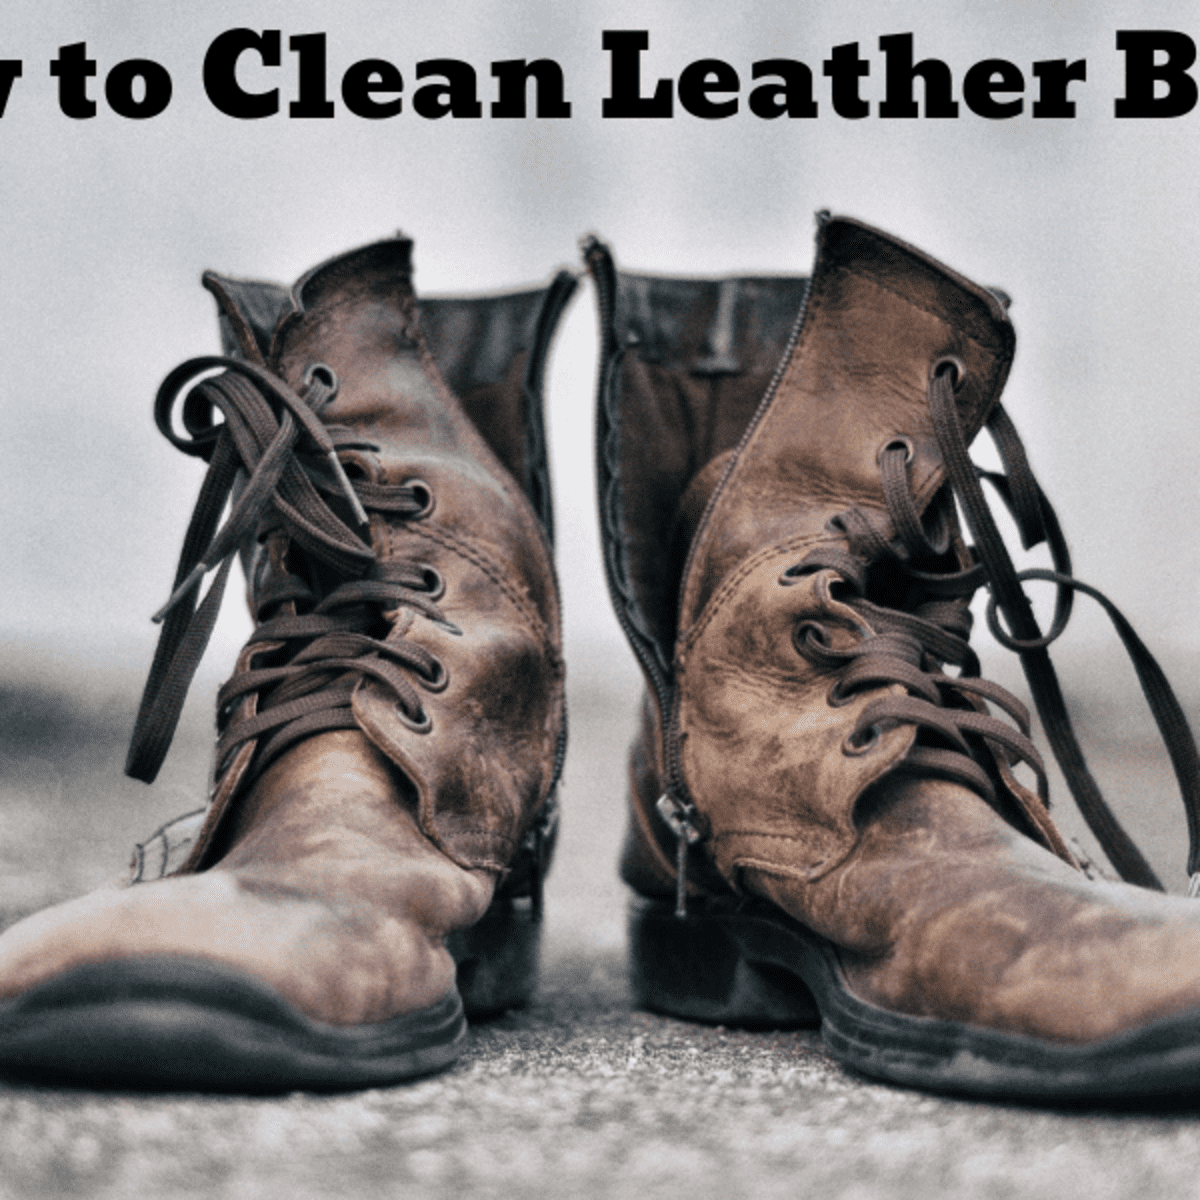 How to Clean Dirty Leather Boots